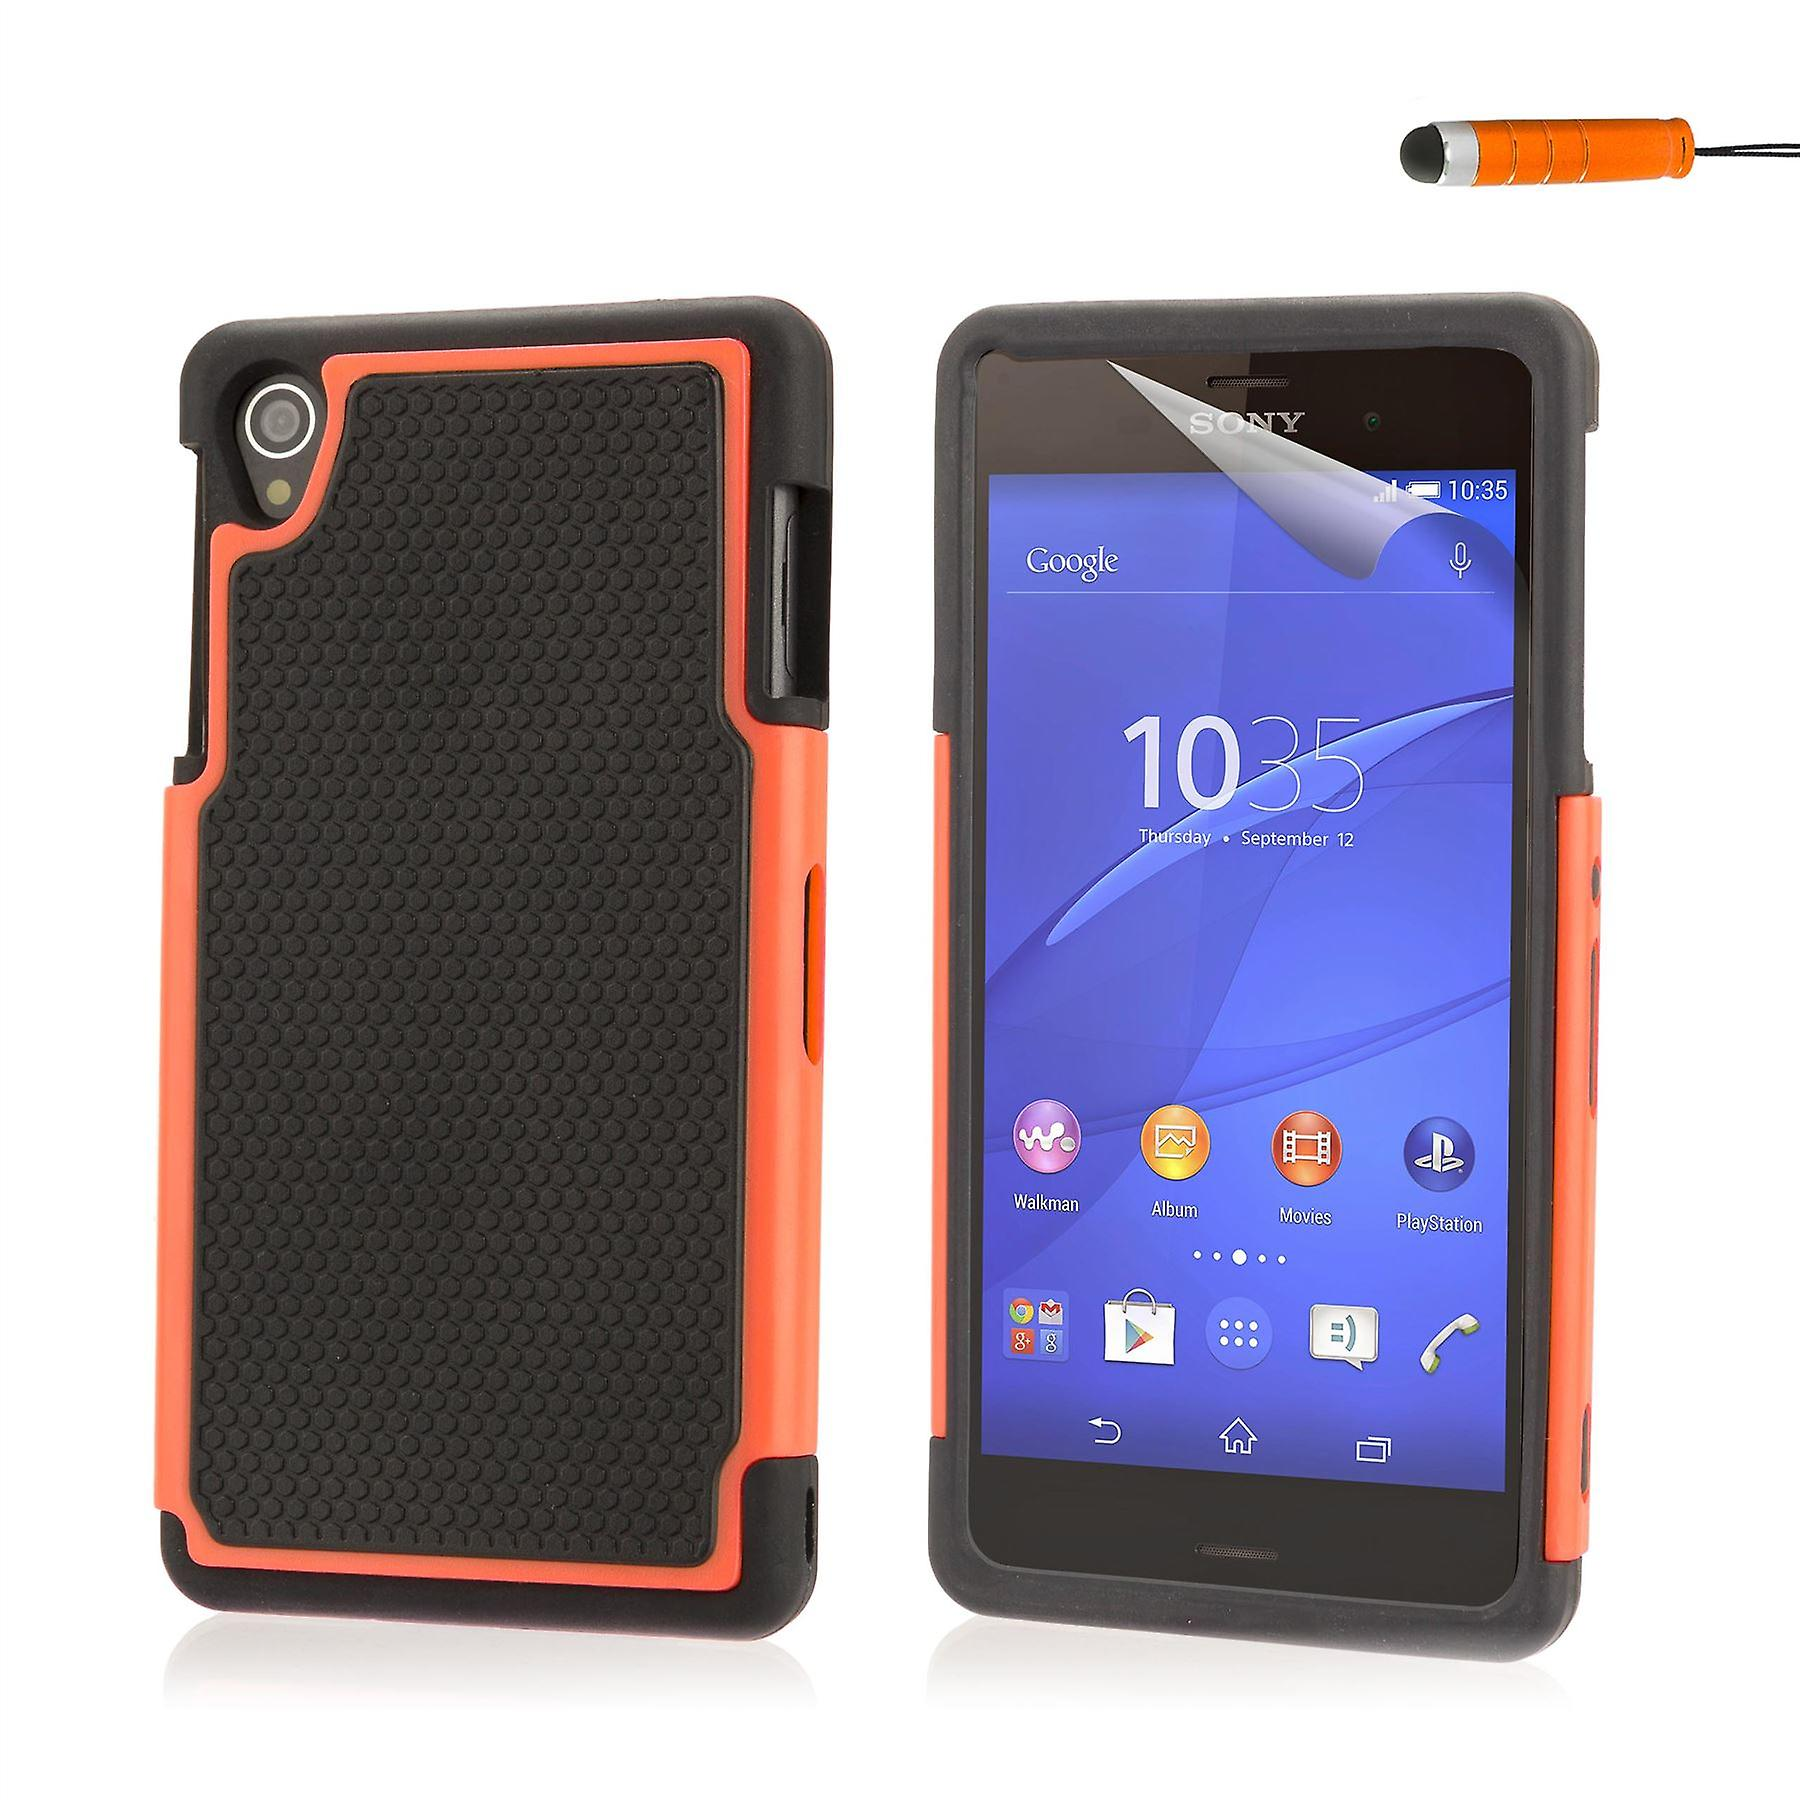 Shock proof case cover for Sony Xperia Z3 including stylus - Orange